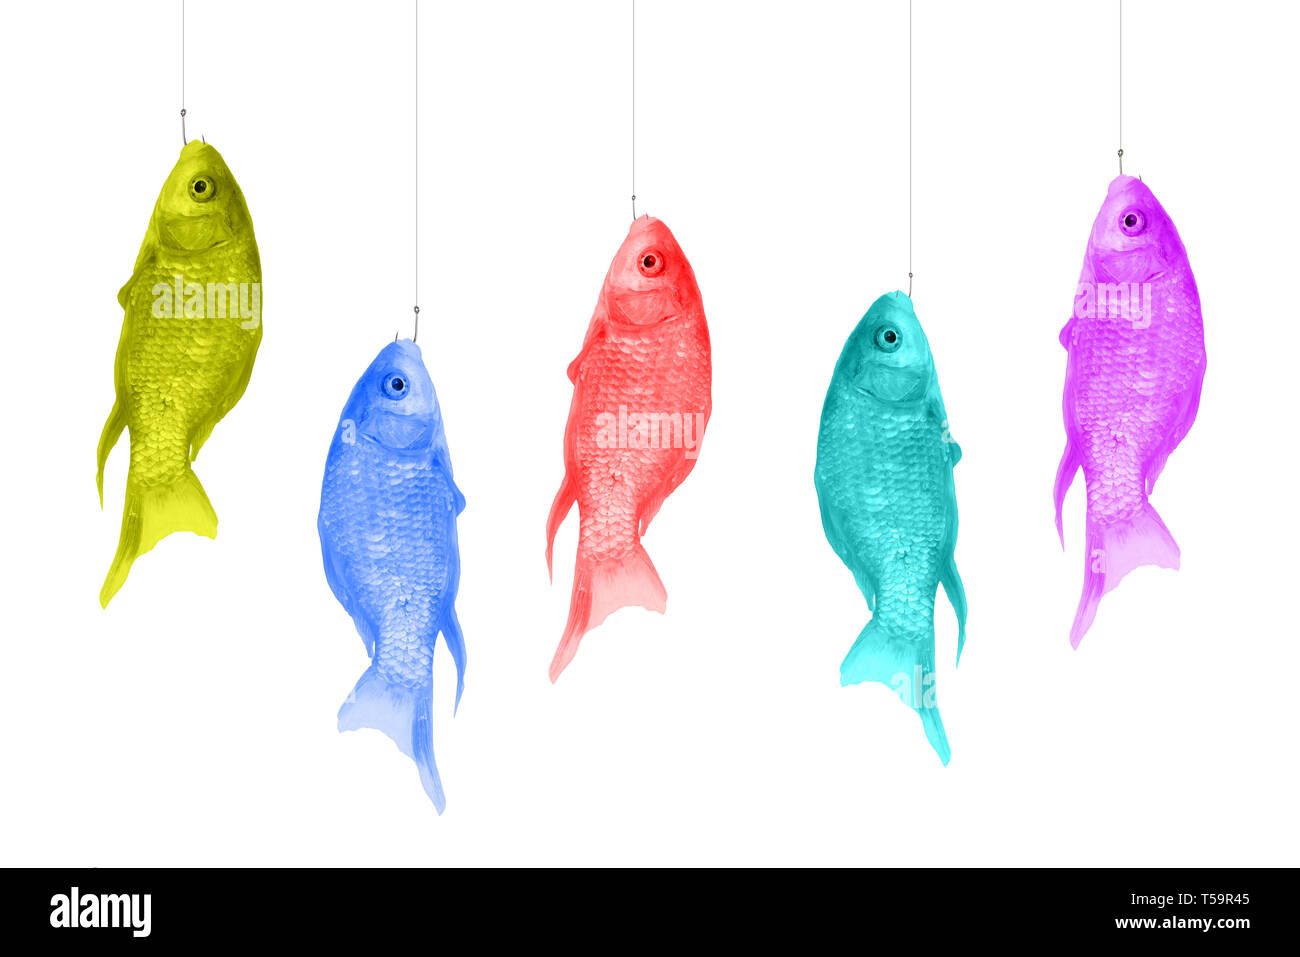 Colorful fish hanging on hooks. Shirts of bright colors on a white background. Pop art design, creative concept. Modern Art - Stock Image